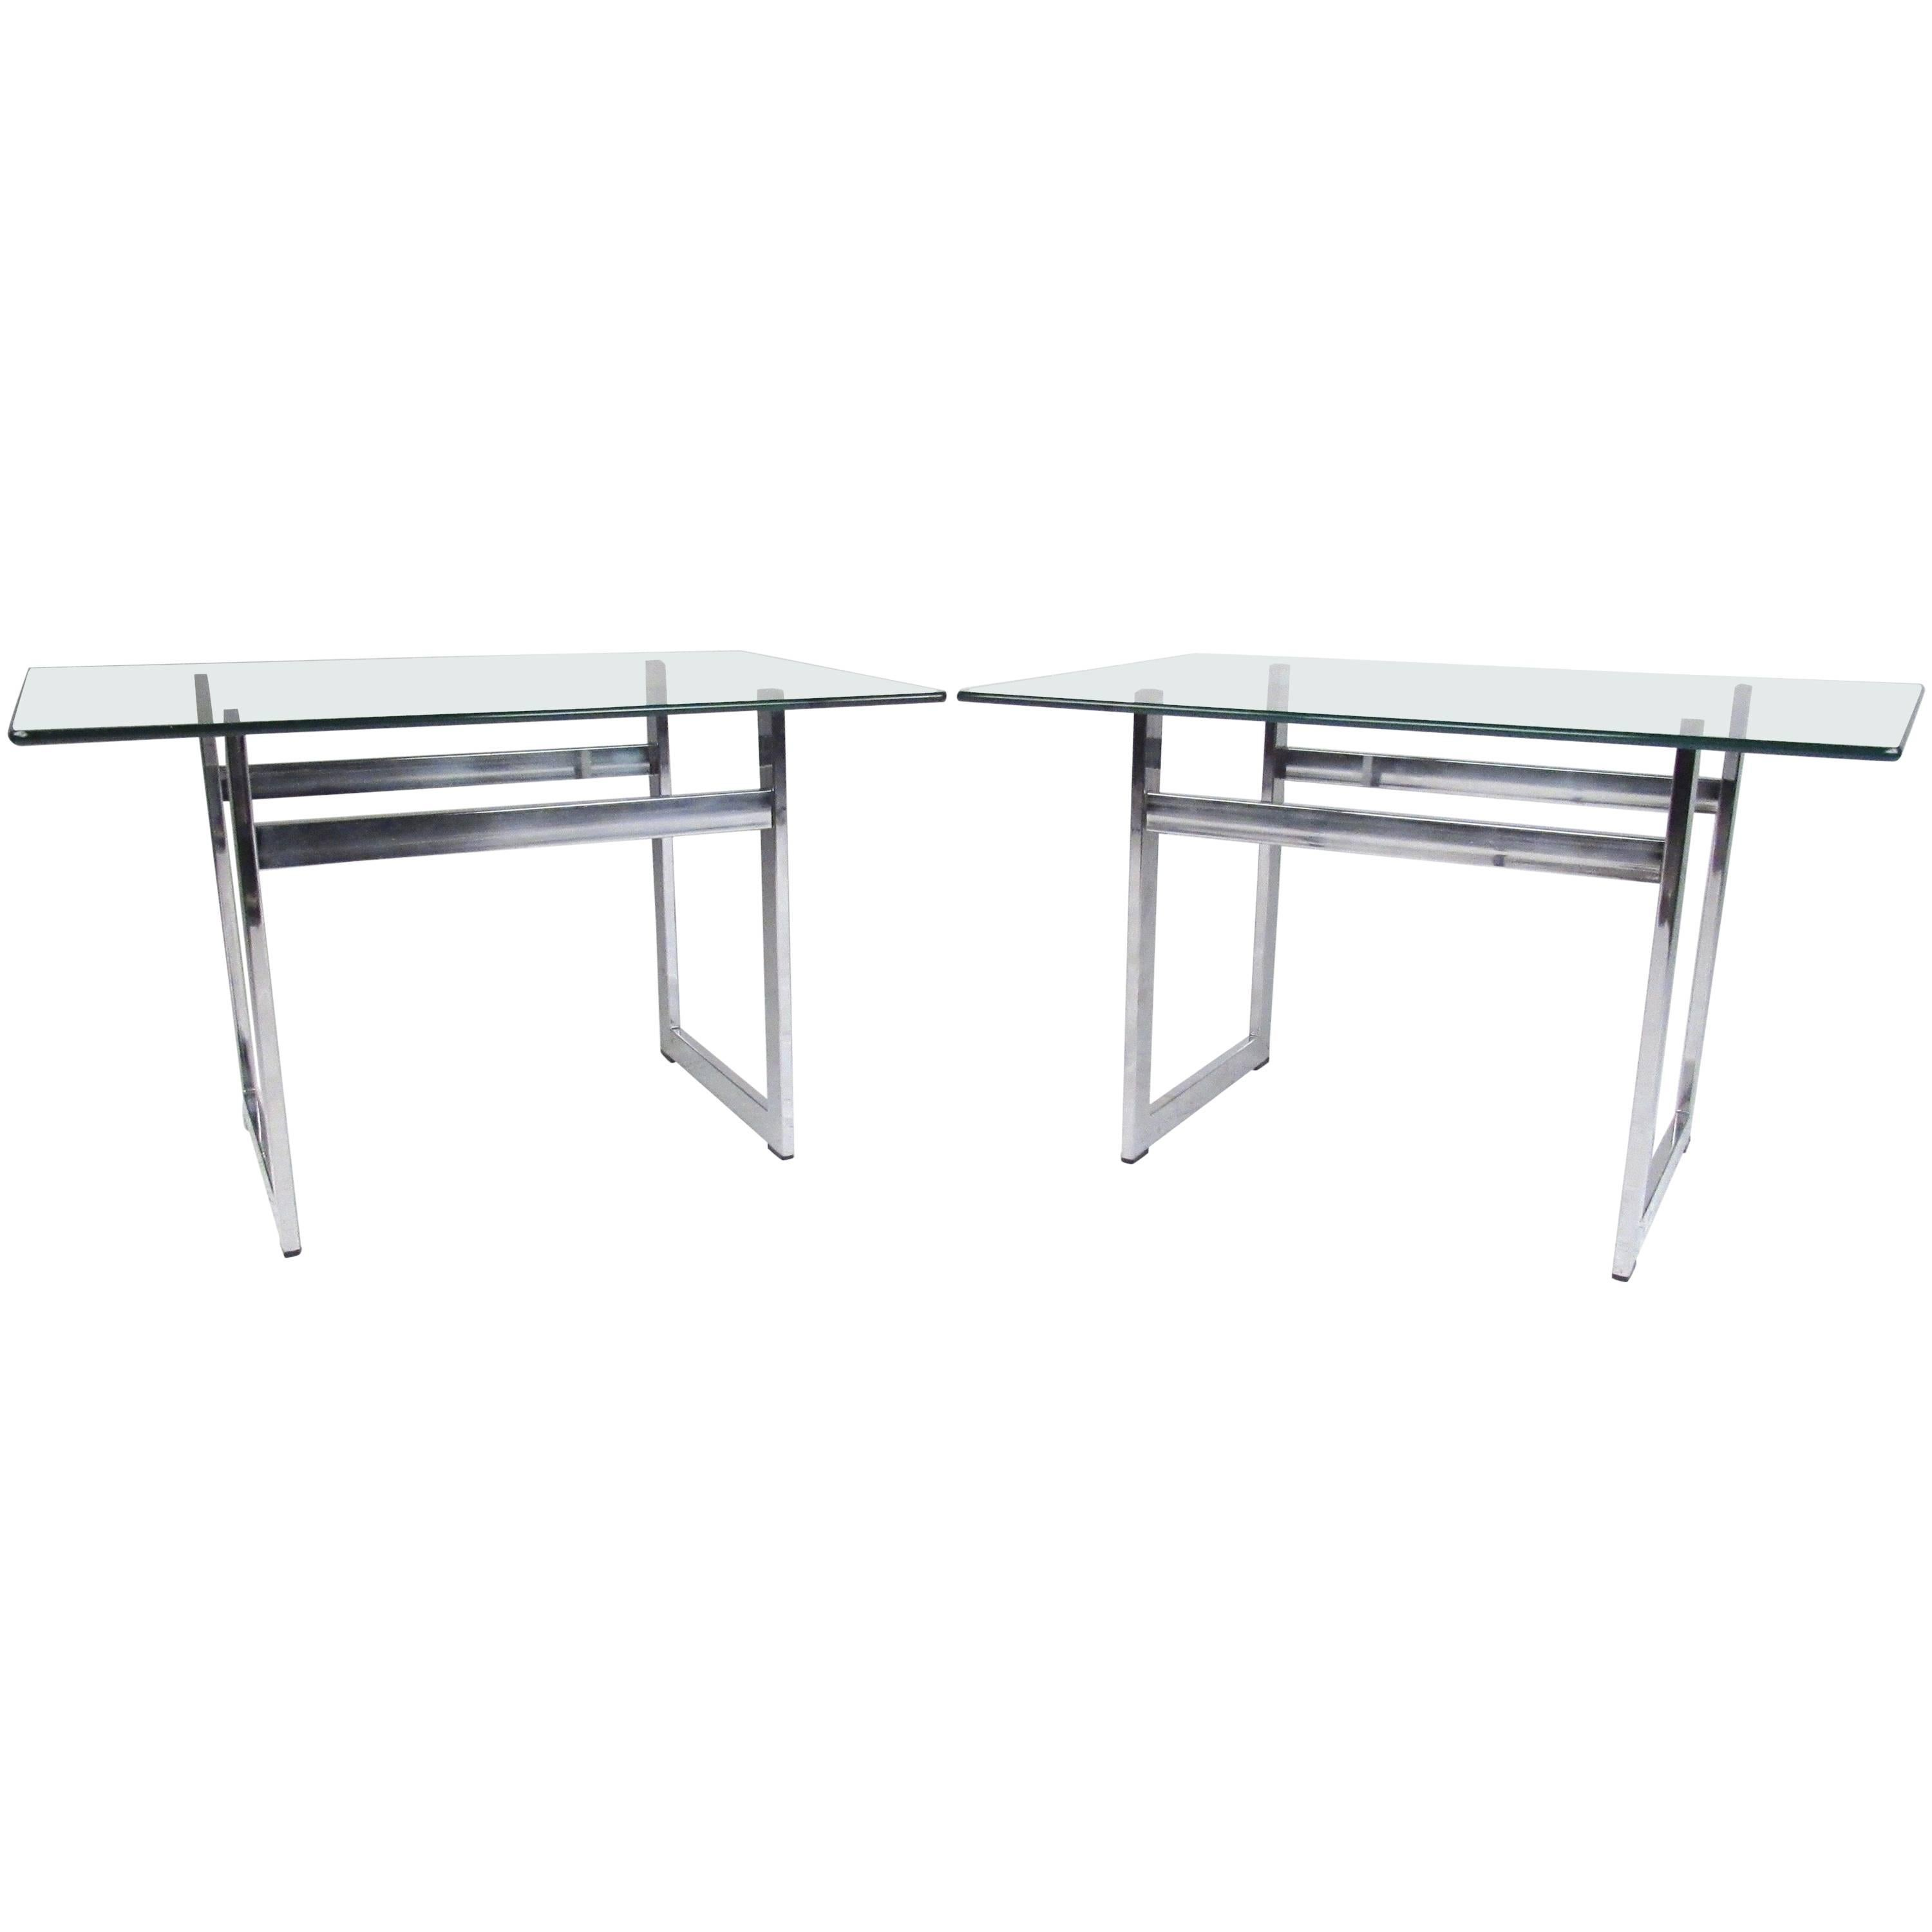 Pair of Modern Chrome and Glass End Tables